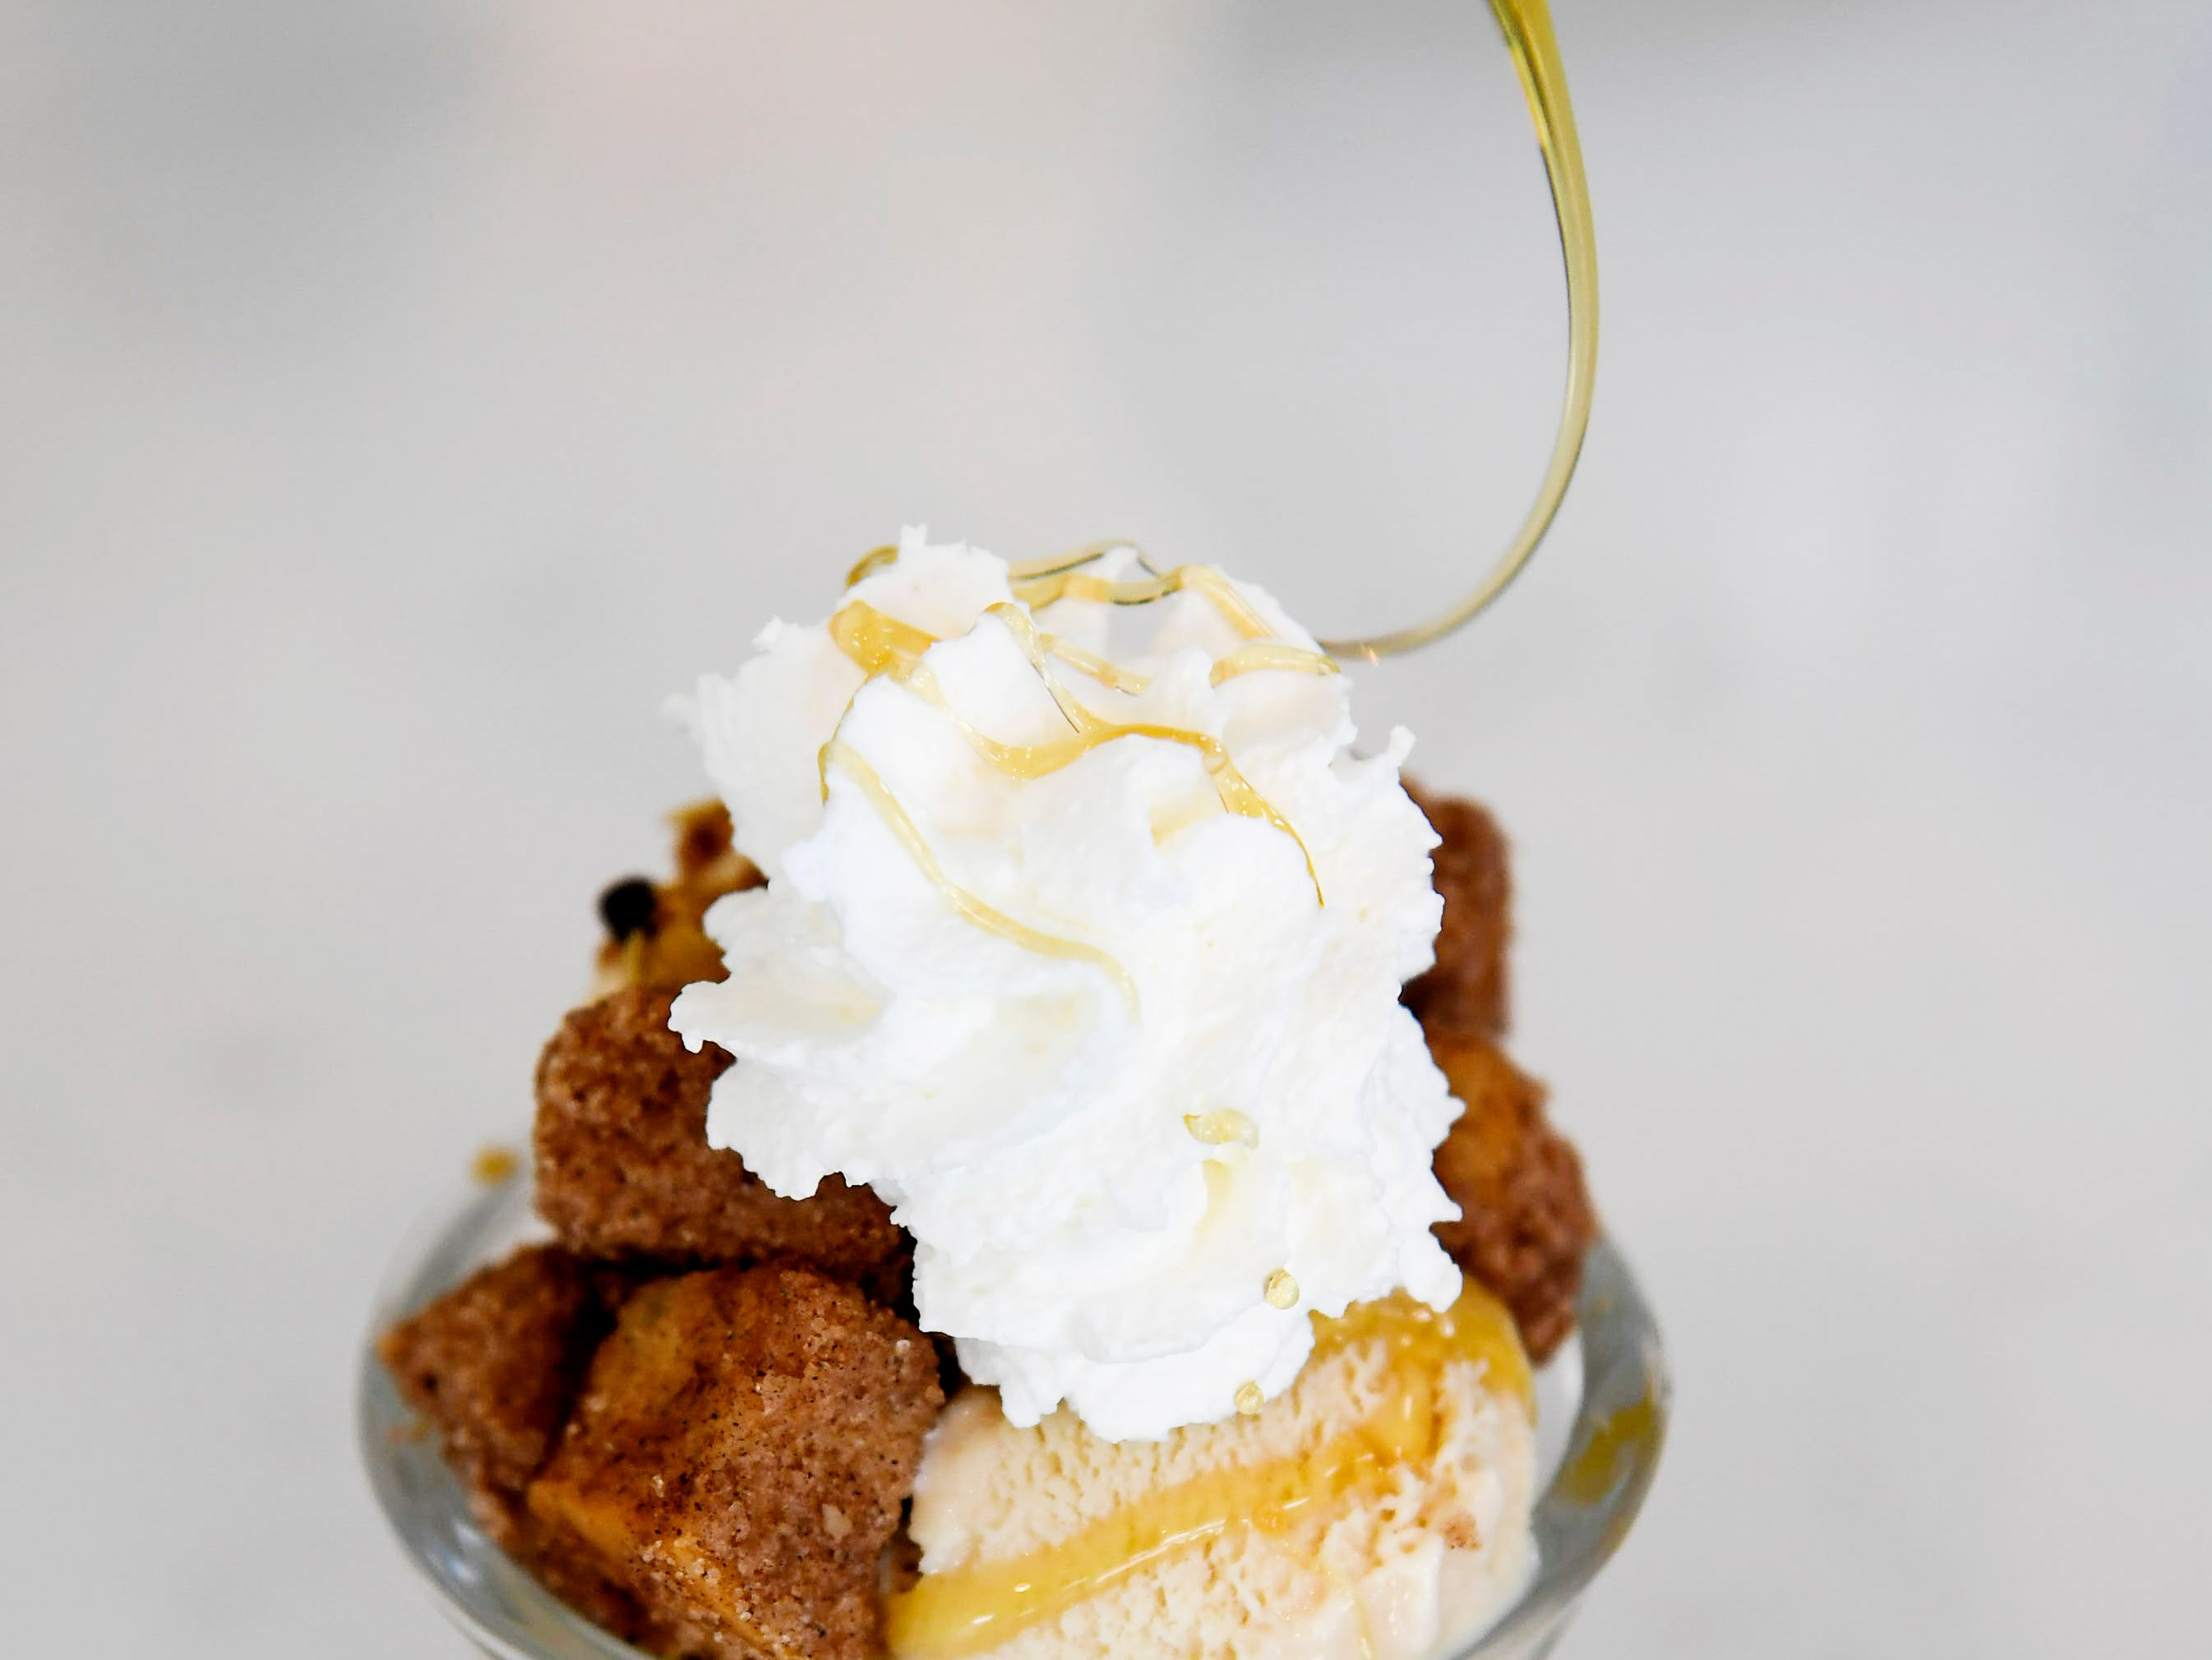 An ice cream sundae is topped with honey at French Broad Chocolates' new Cookies & Creamery on Buxton Avenue April 8, 2019.